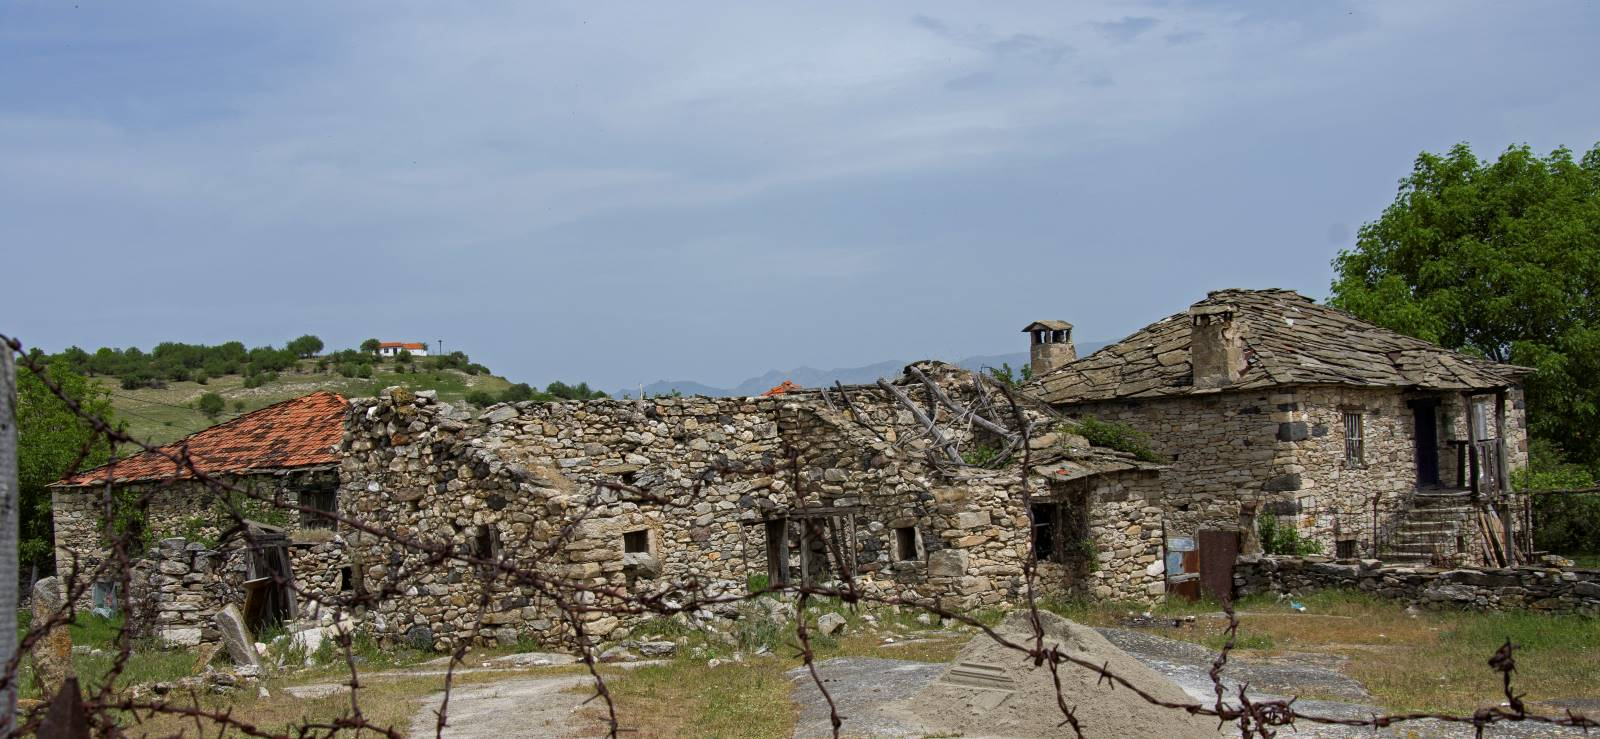 Ruined old house in the village of Zovich, Mariovo